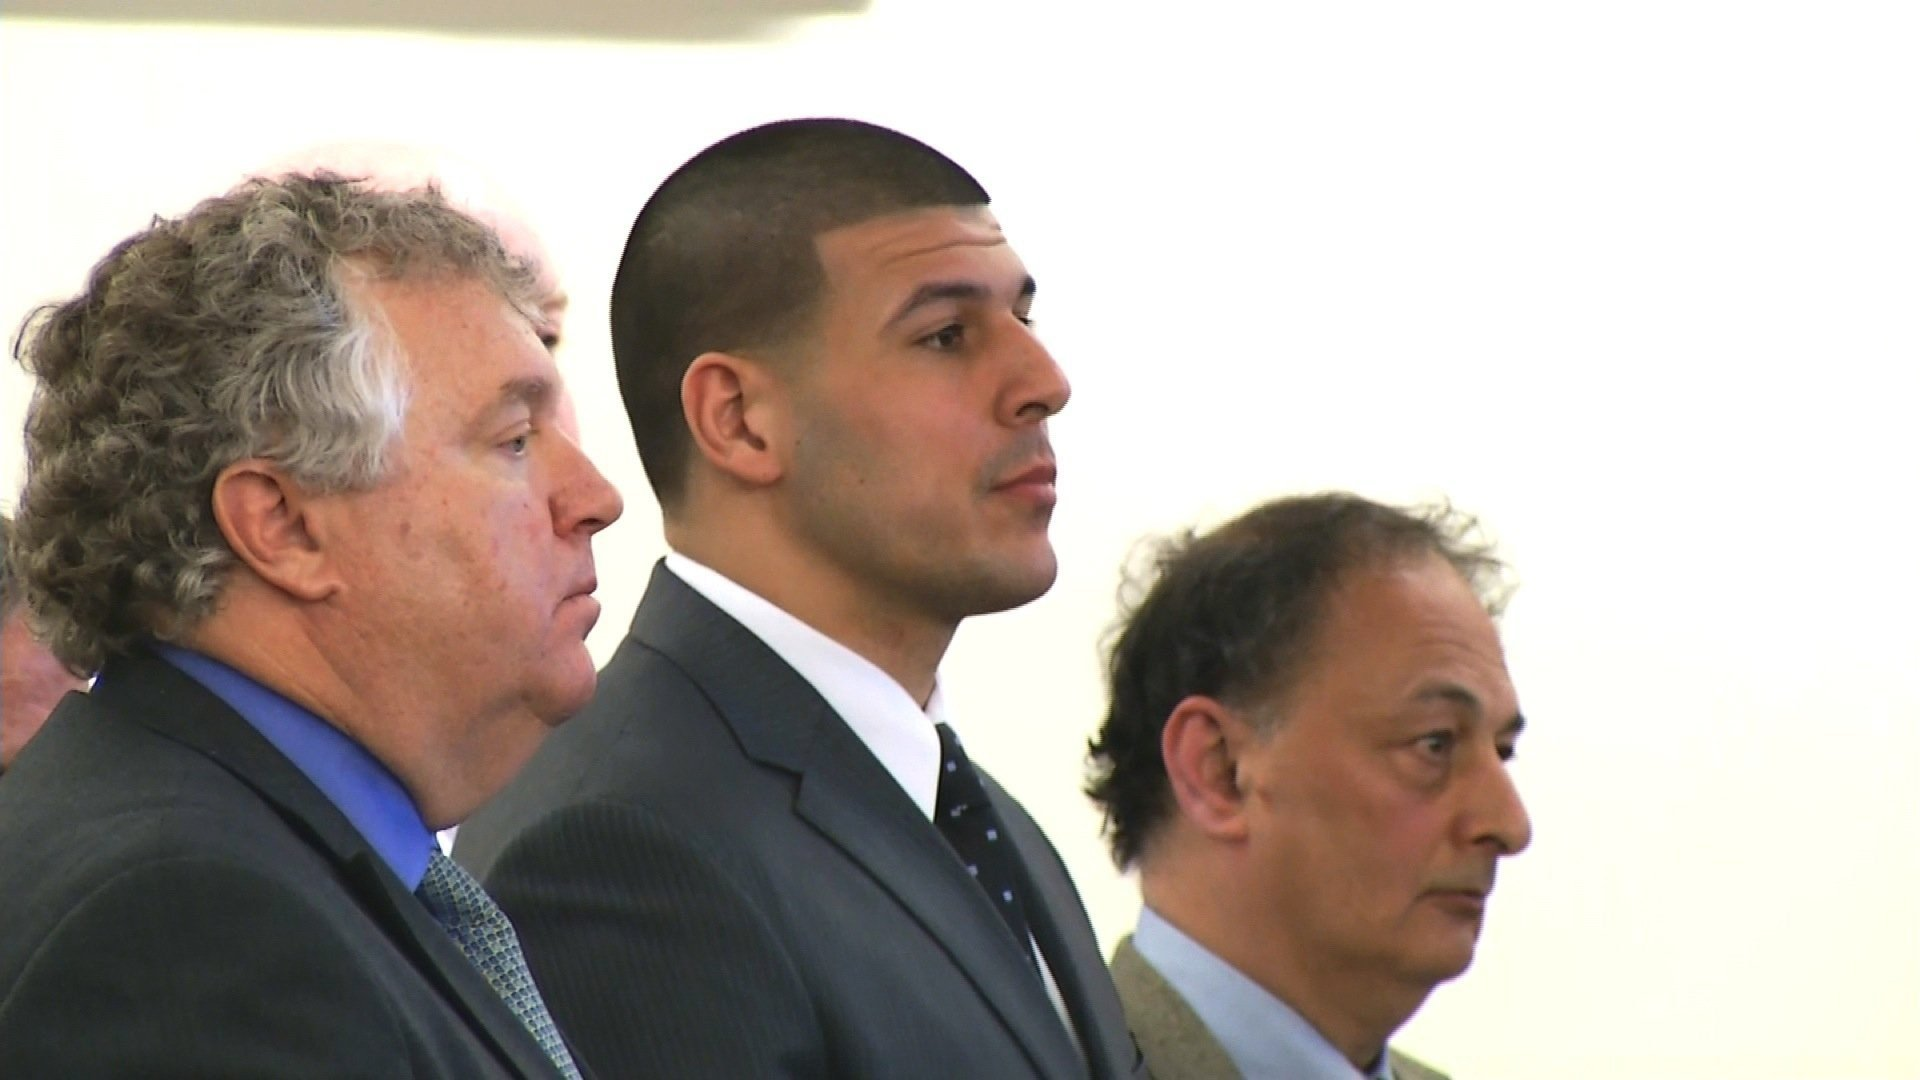 Aaron Hernandez's family, medical examiner's office tussle over ex-NFL player's brain